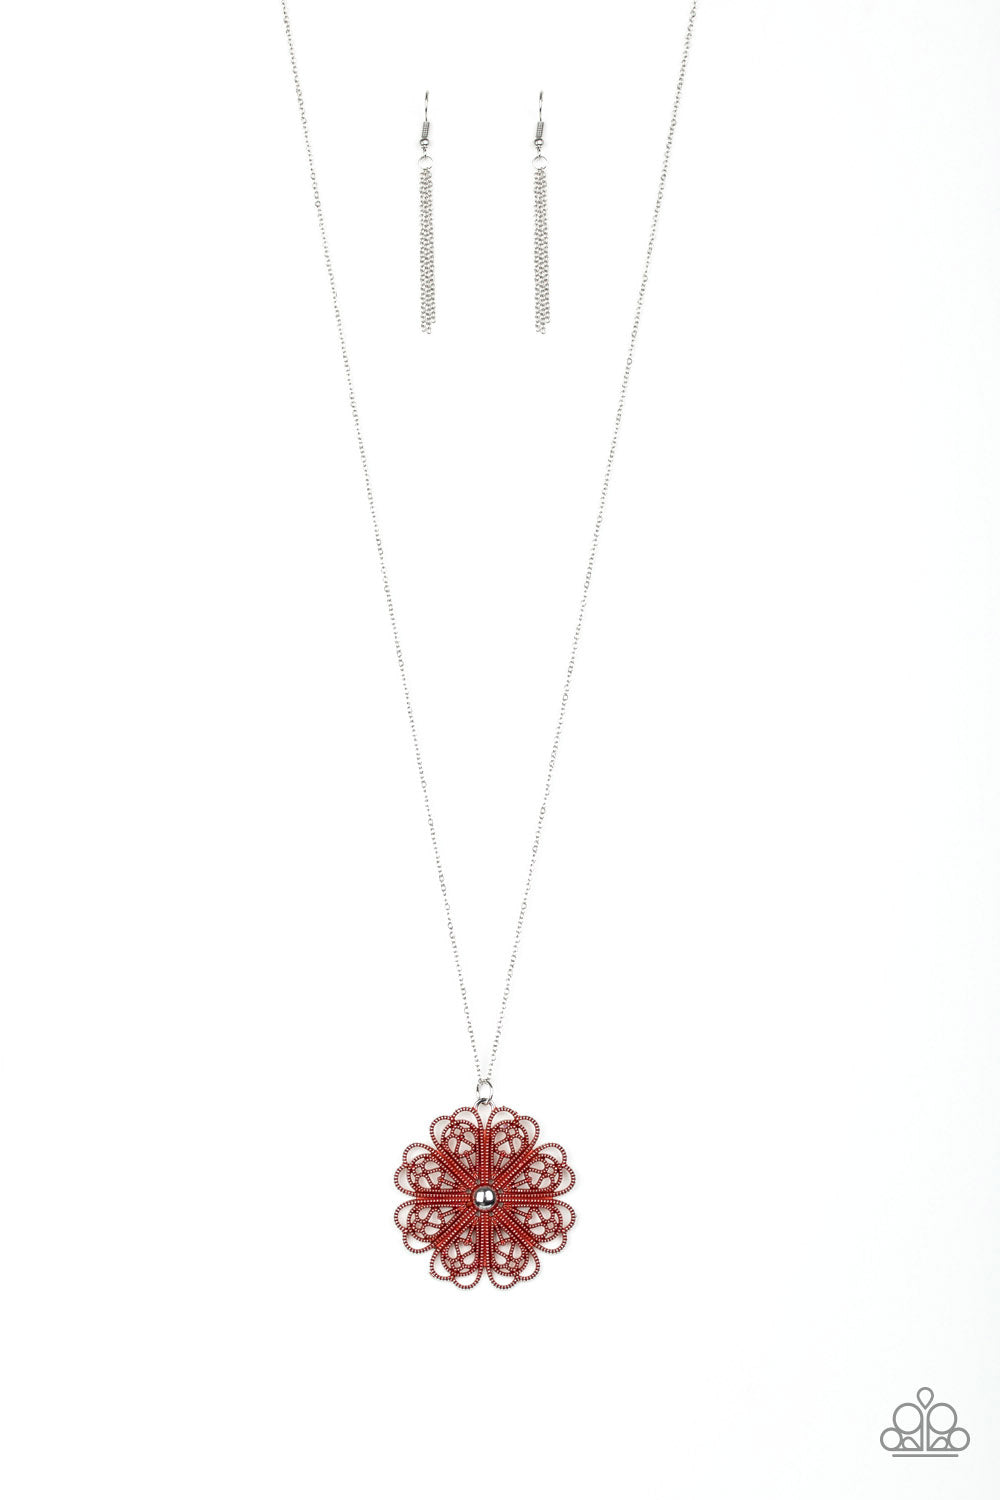 Paparazzi Necklace ~ Spin Your PINWHEELS - Red